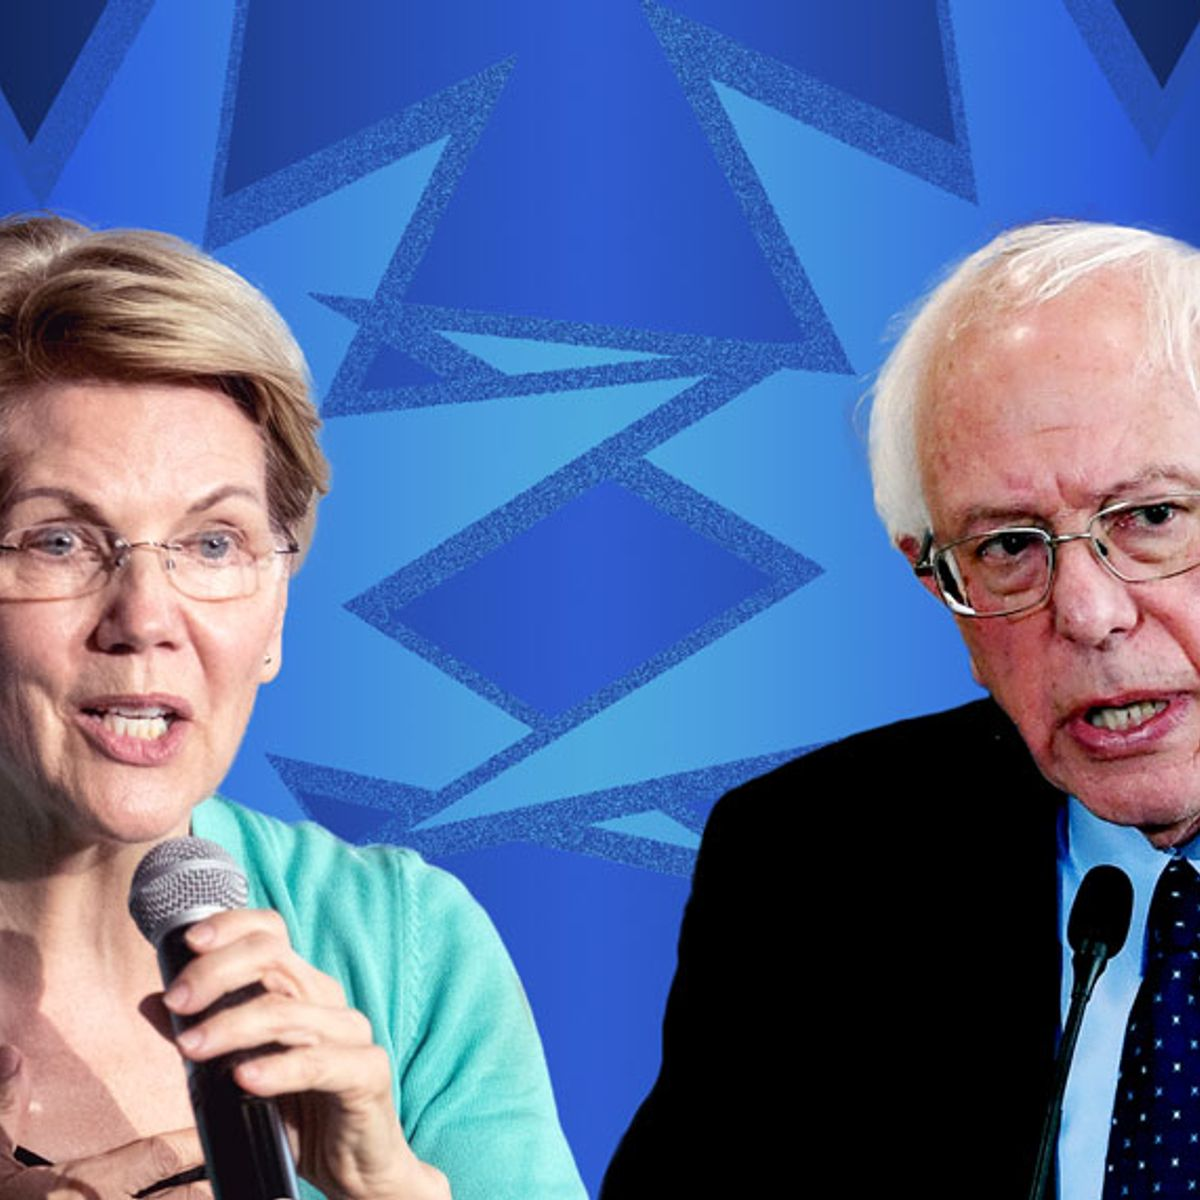 Elizabeth Warren's frenemies: Her rise has been helped by haters